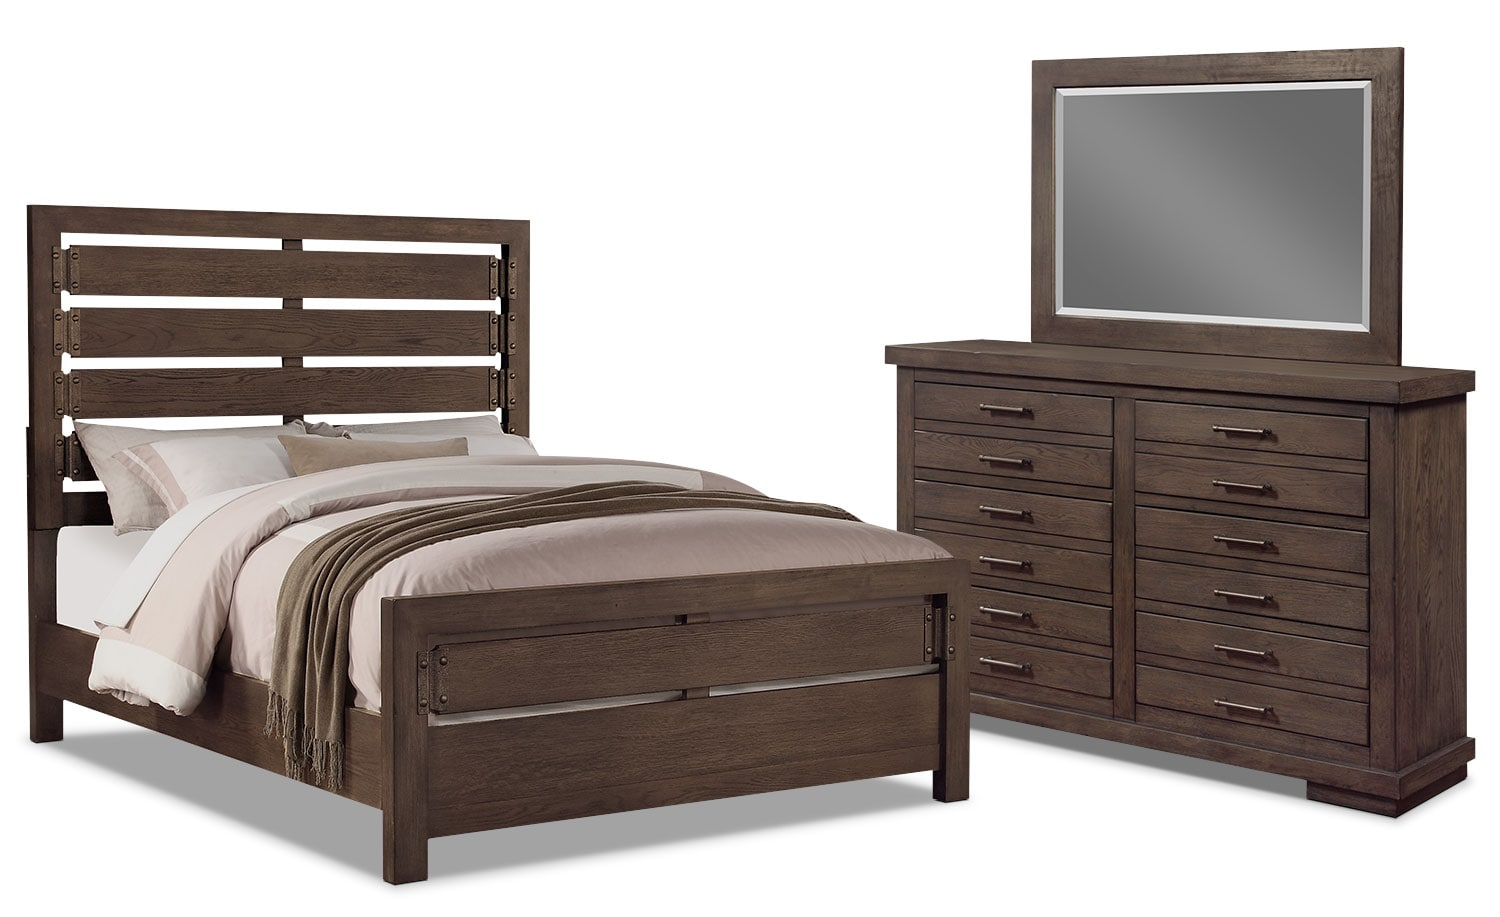 Bedroom Furniture - Revolution 5-Piece King Bedroom Package